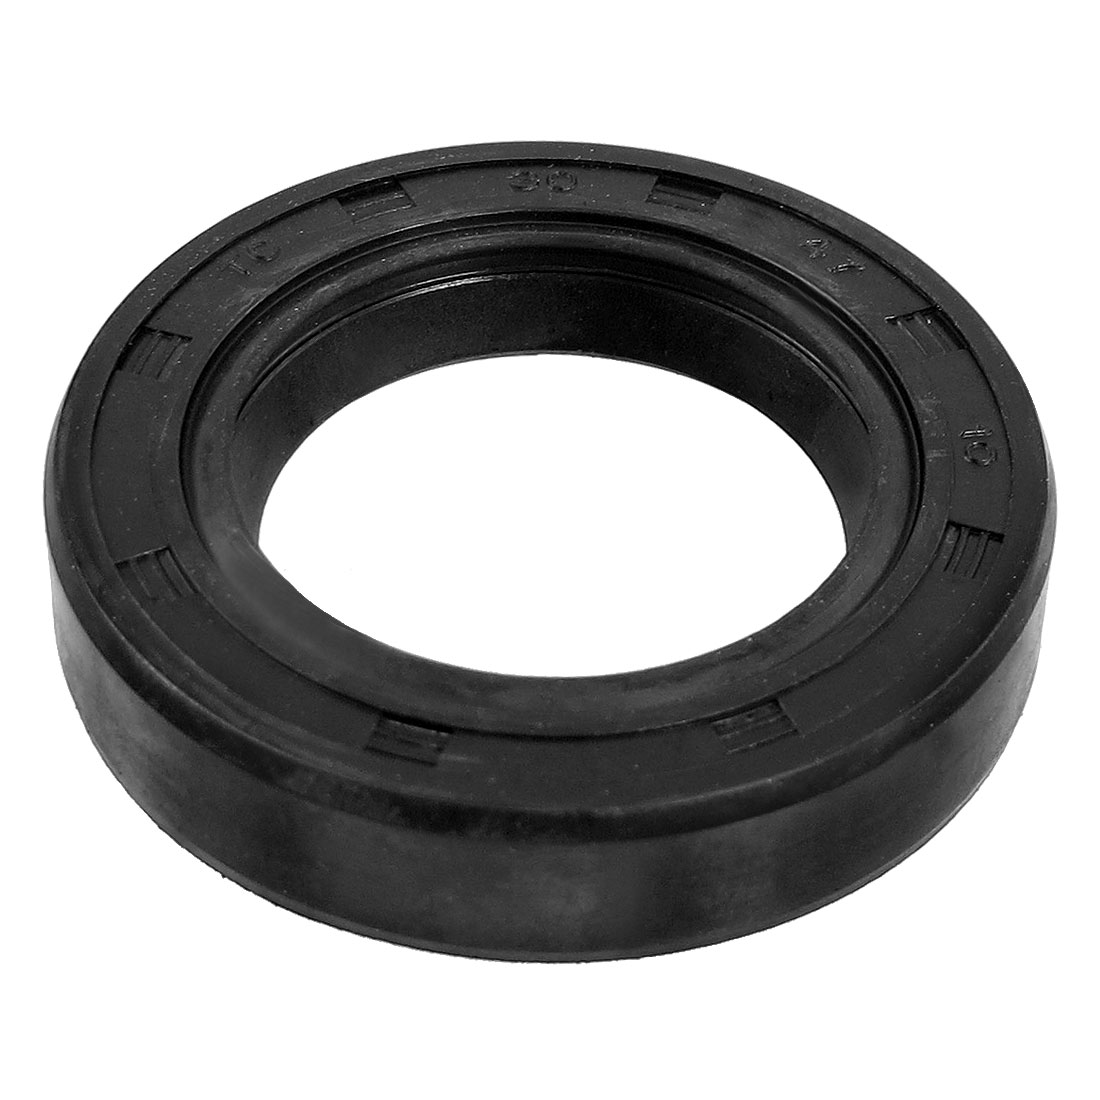 Steel Spring NBR Double Lip TC Oil Seal Black 30mm x 47mm x 10mm